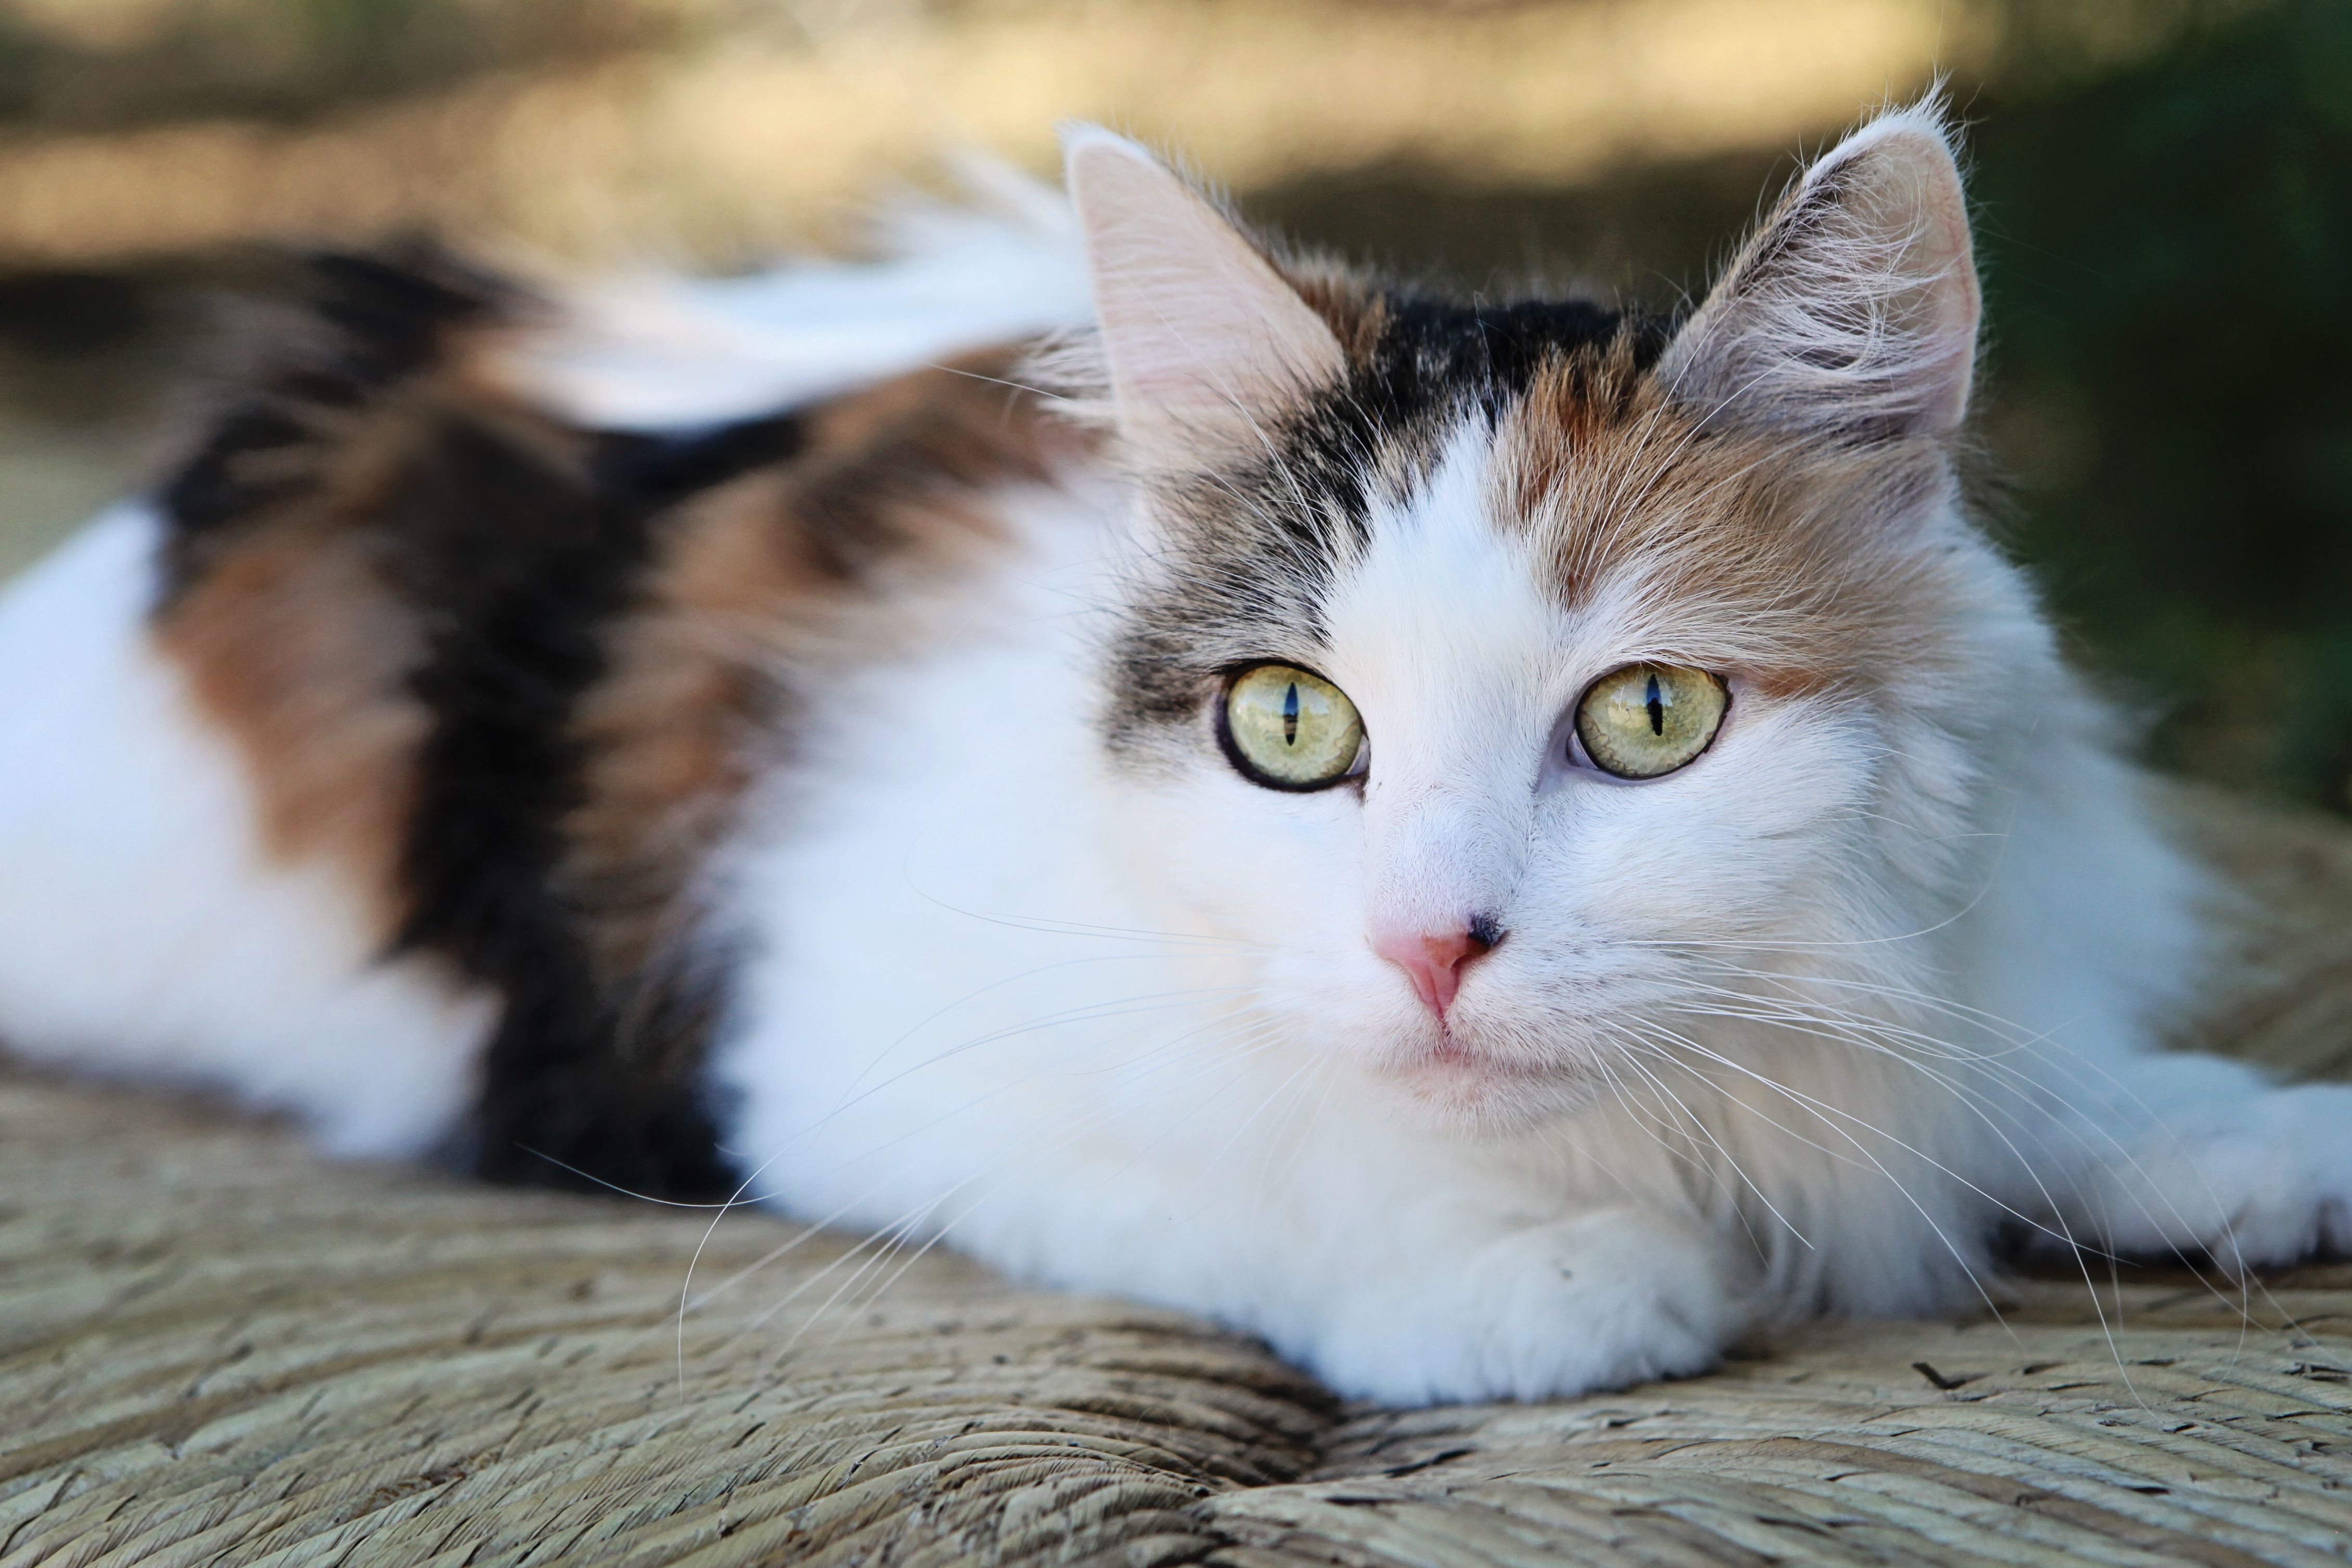 Fiona, long haired calico cat